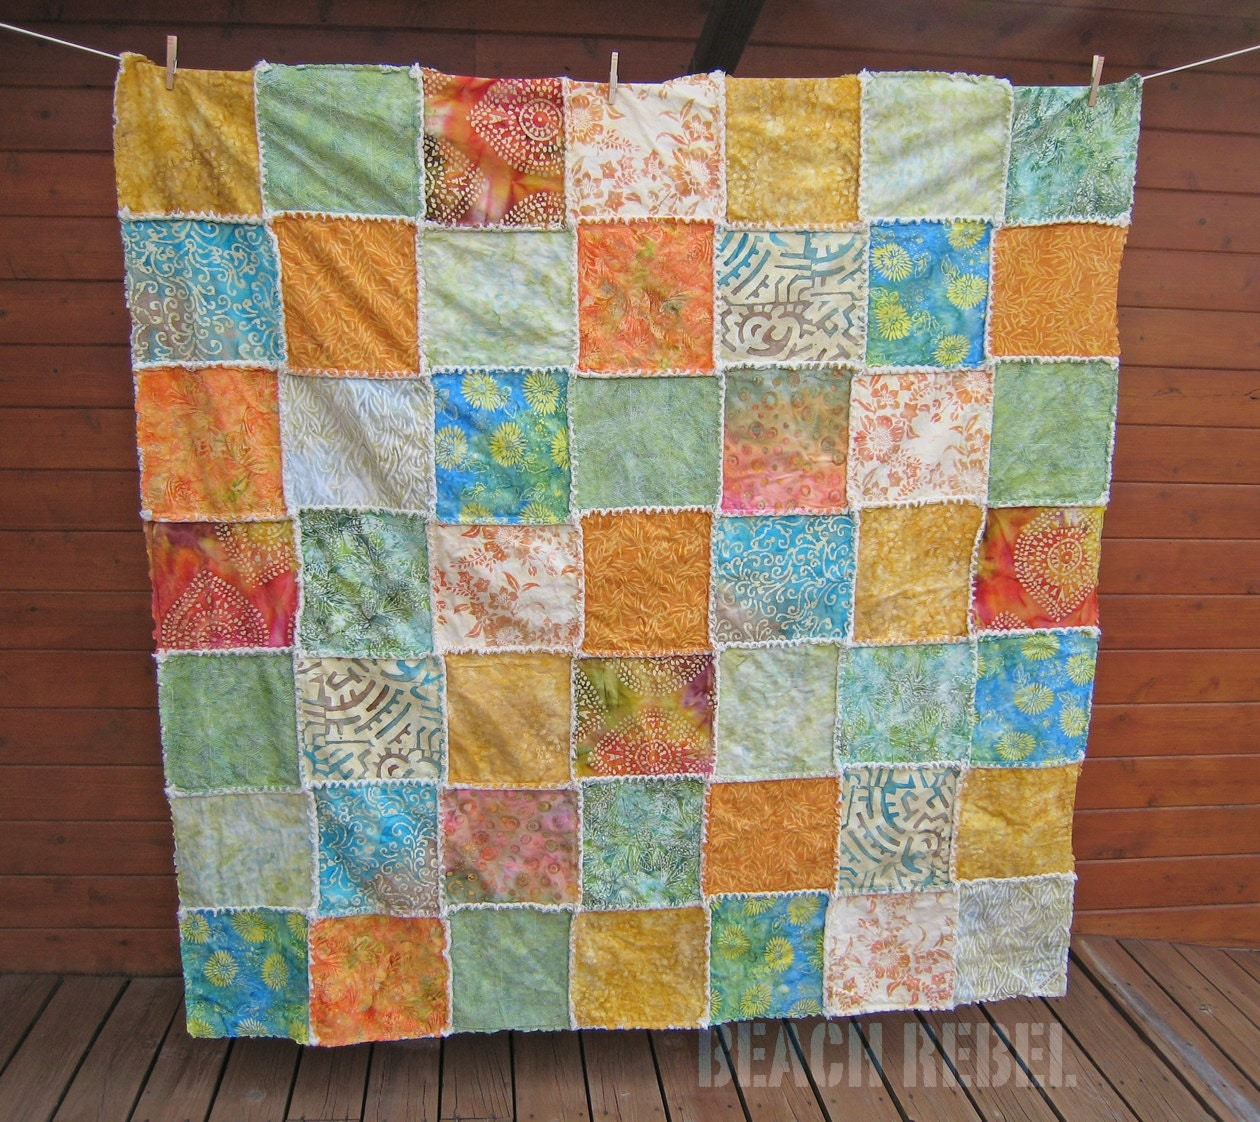 Rag Quilt Color Ideas : Batik and denim rag quilt throw in summertime colors by BeachRebel